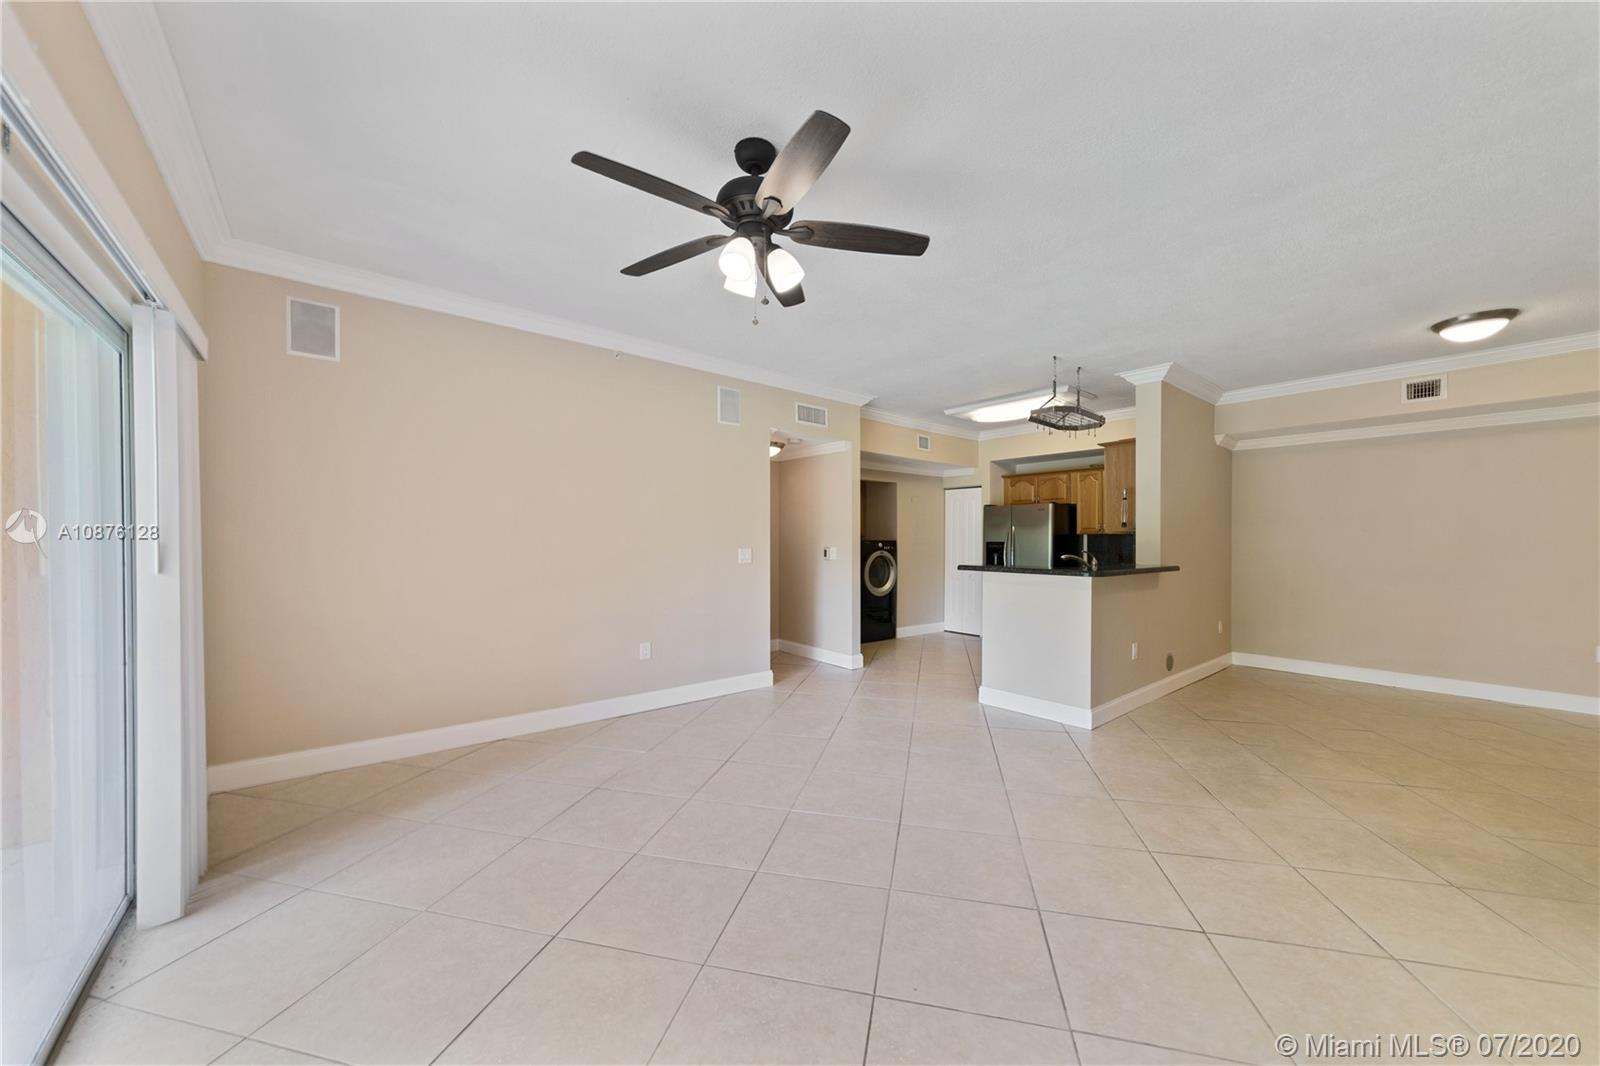 6976 SW 39th St #G105 For Sale A10876128, FL